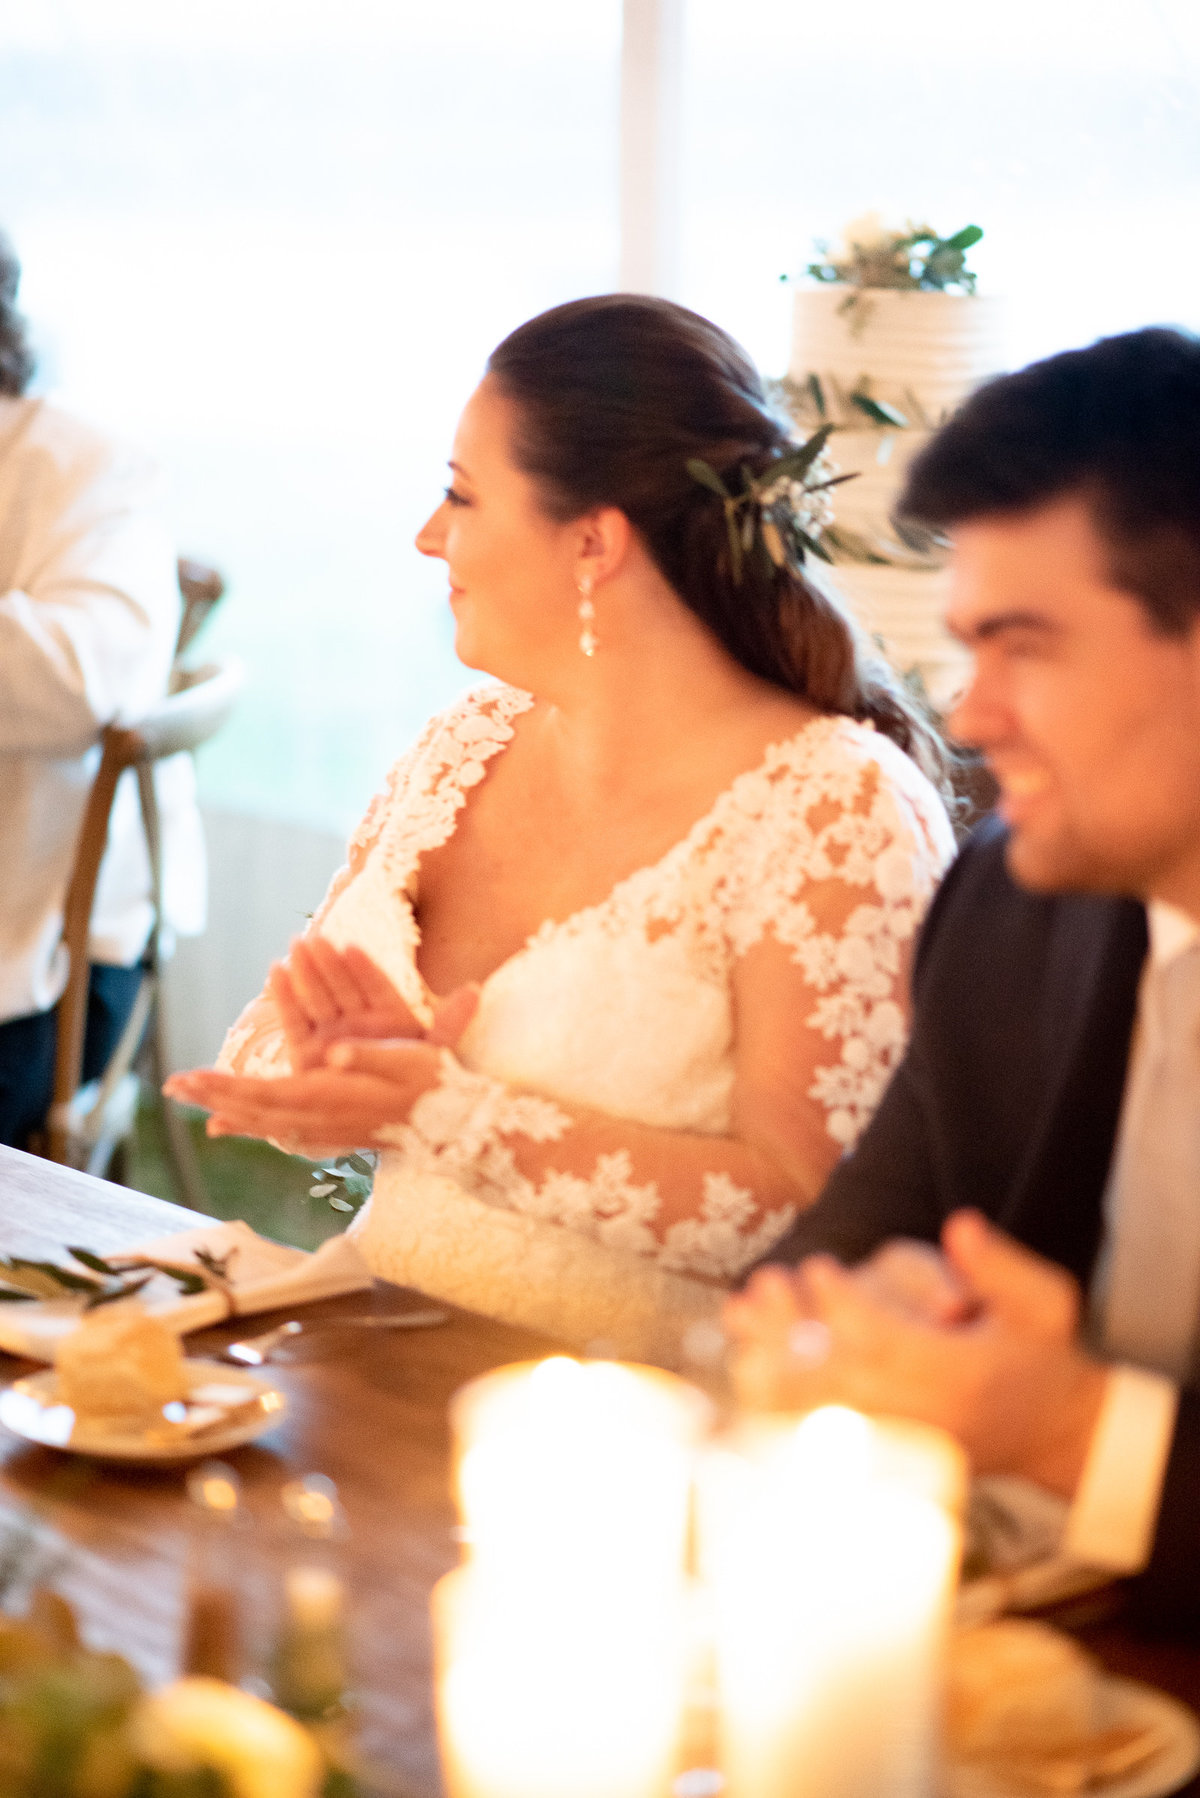 Megan_Harris_Photography_Fine_Art_Chestertown_Maryland_Wedding_Blog (11 of 61)